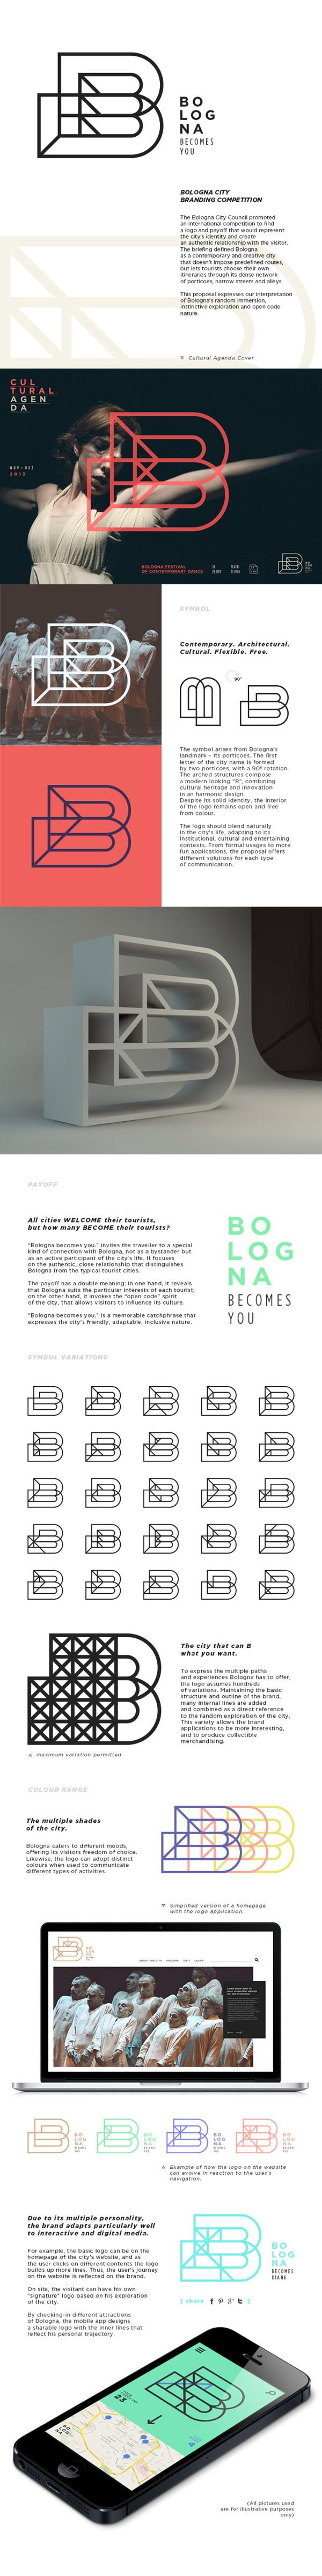 Claudia Ribeiro – Bologna City brand identity proposal